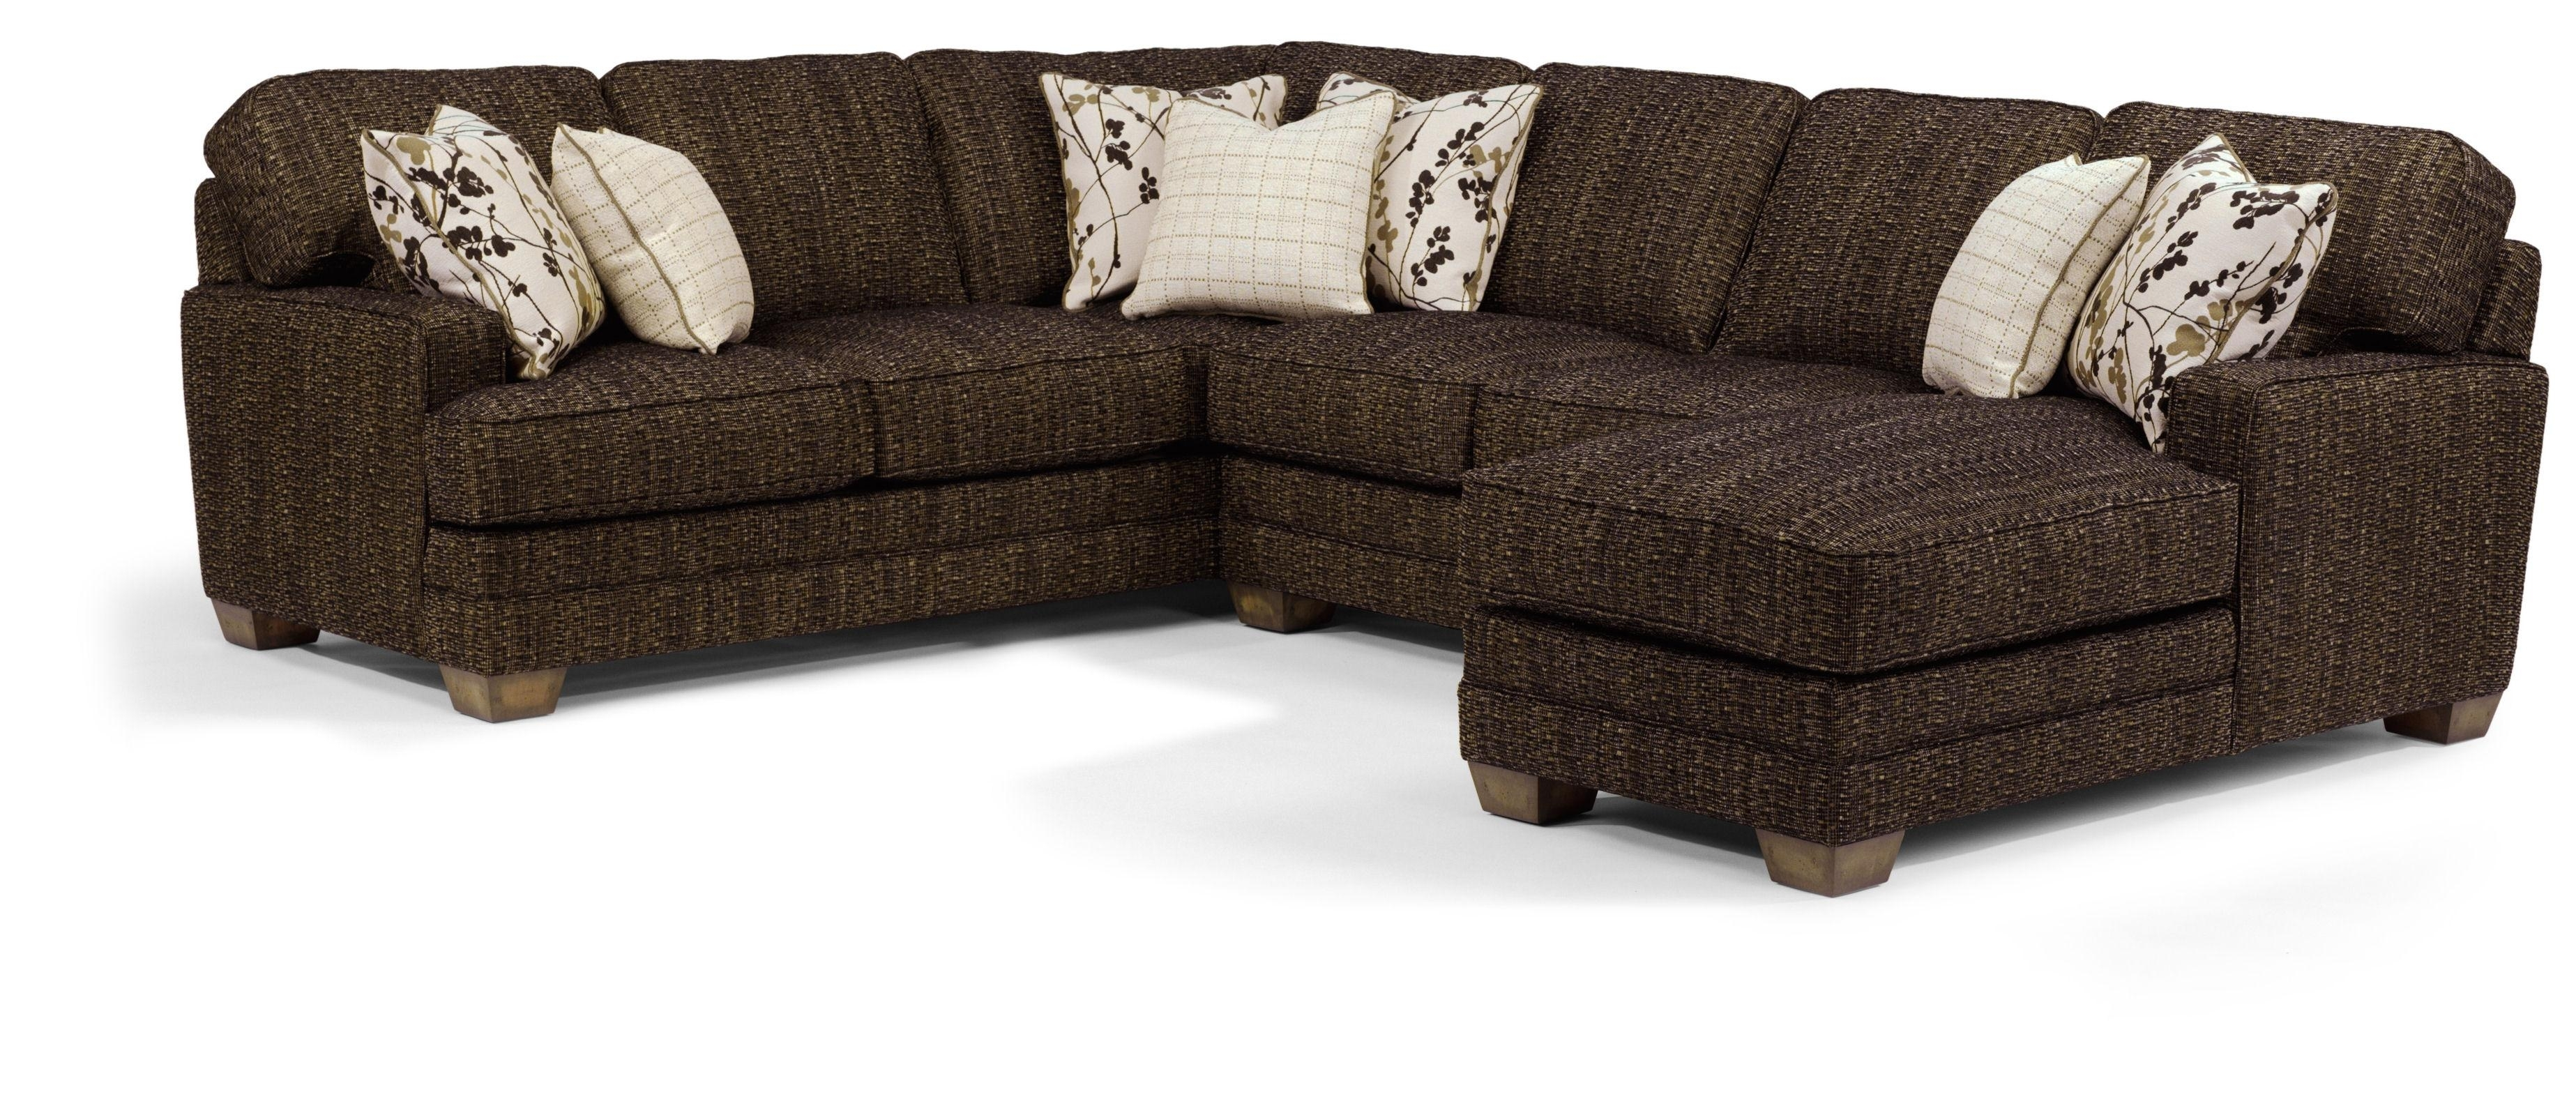 Flexsteel That's My Style <B>Customizable</b> 3 Piece Sectional Sofa For Delano 2 Piece Sectionals With Laf Oversized Chaise (View 18 of 30)